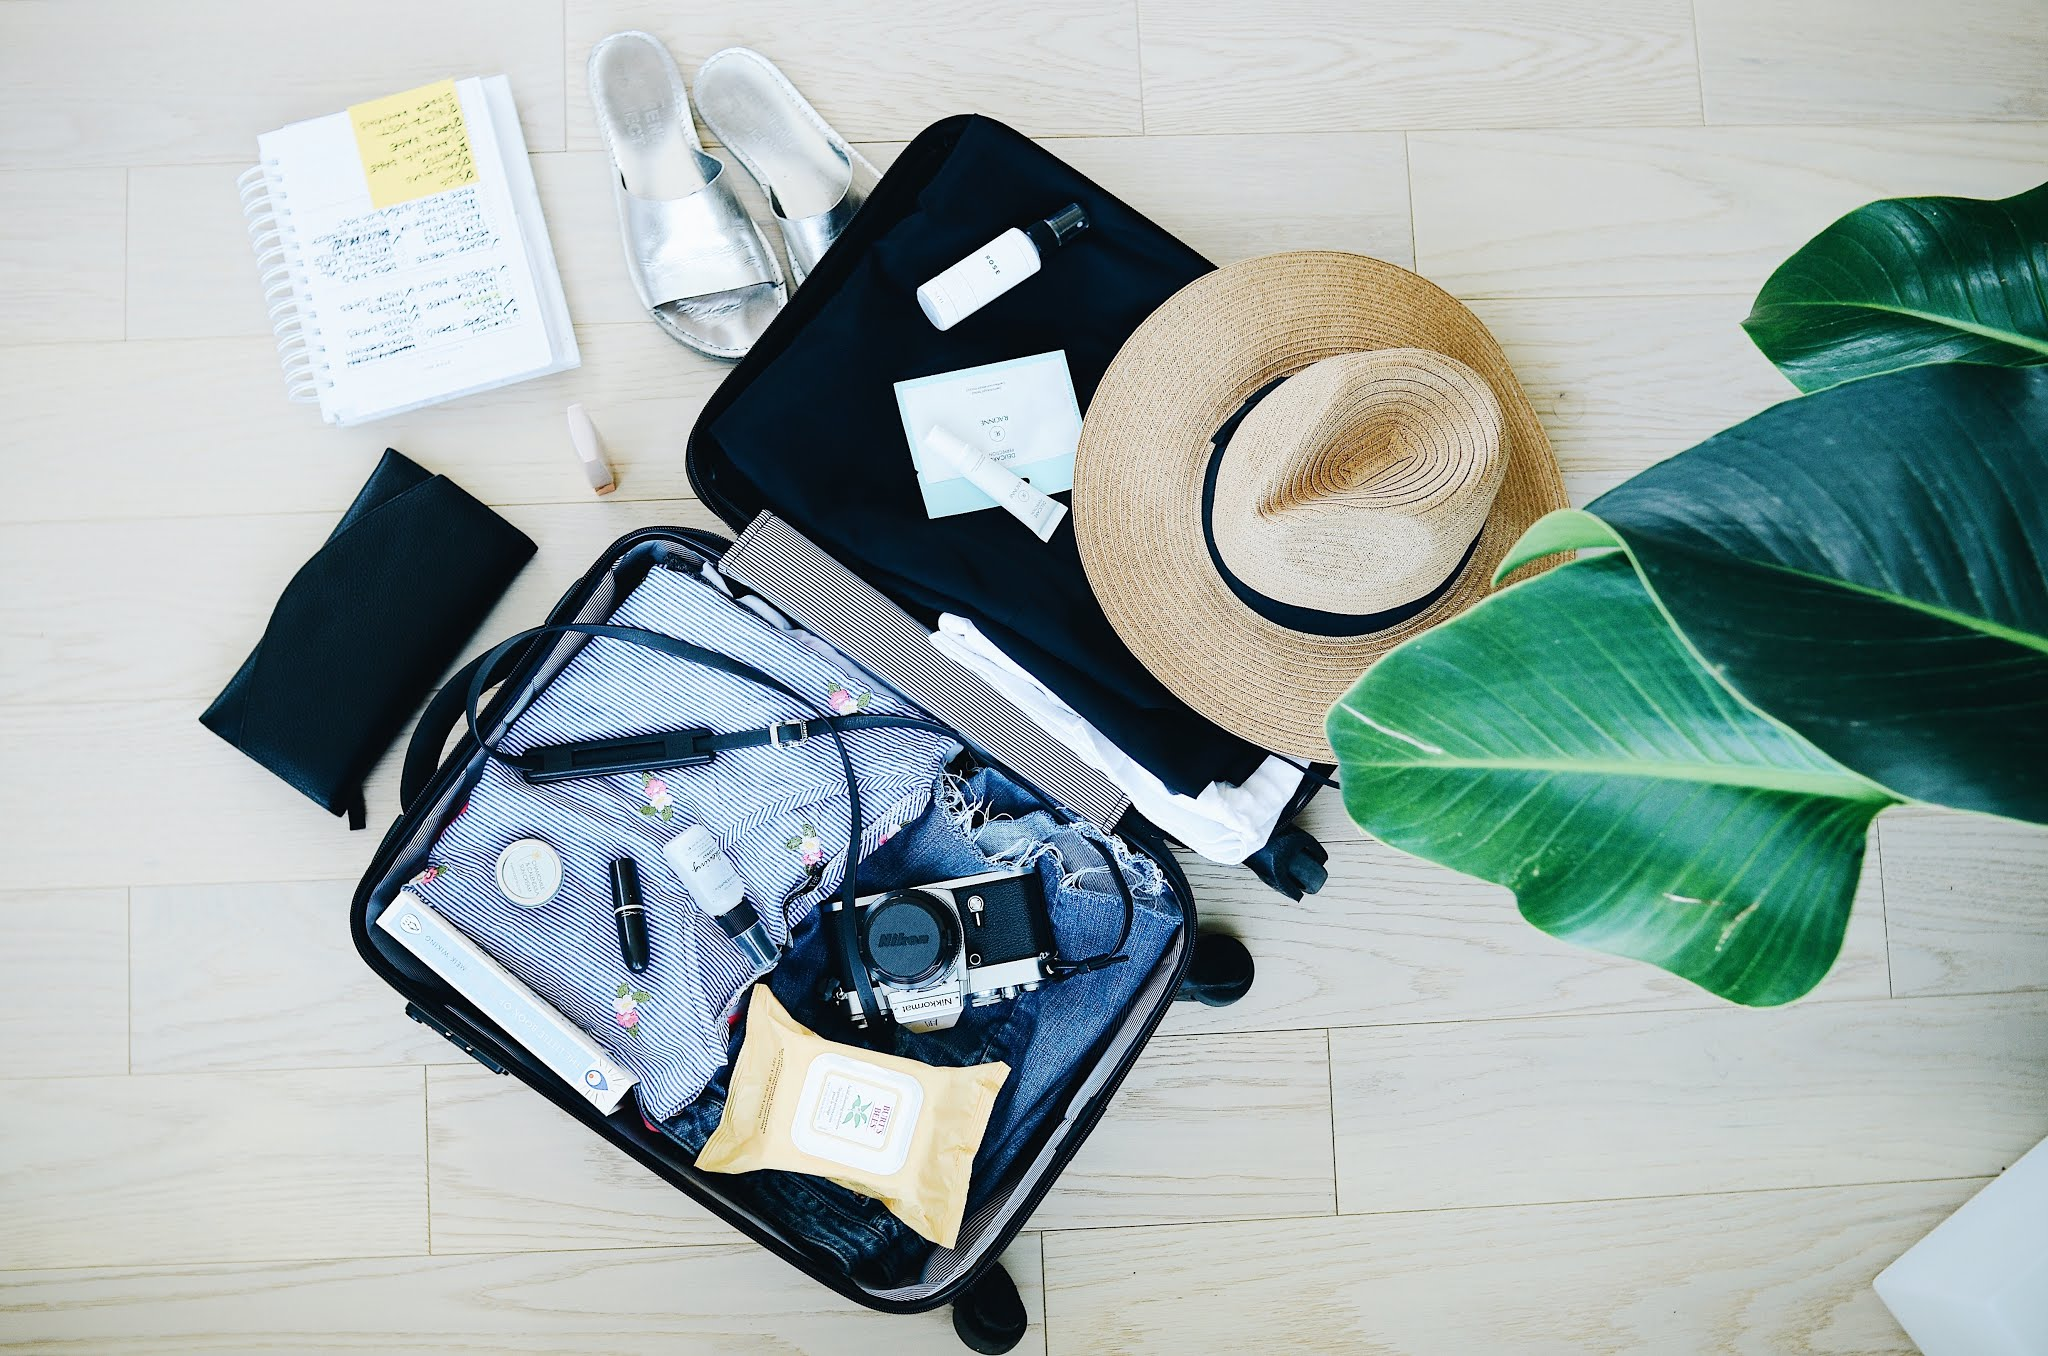 11 Travel Hacks That Will Save You Money, Time, Luggage Space, And More - Taylor Mead